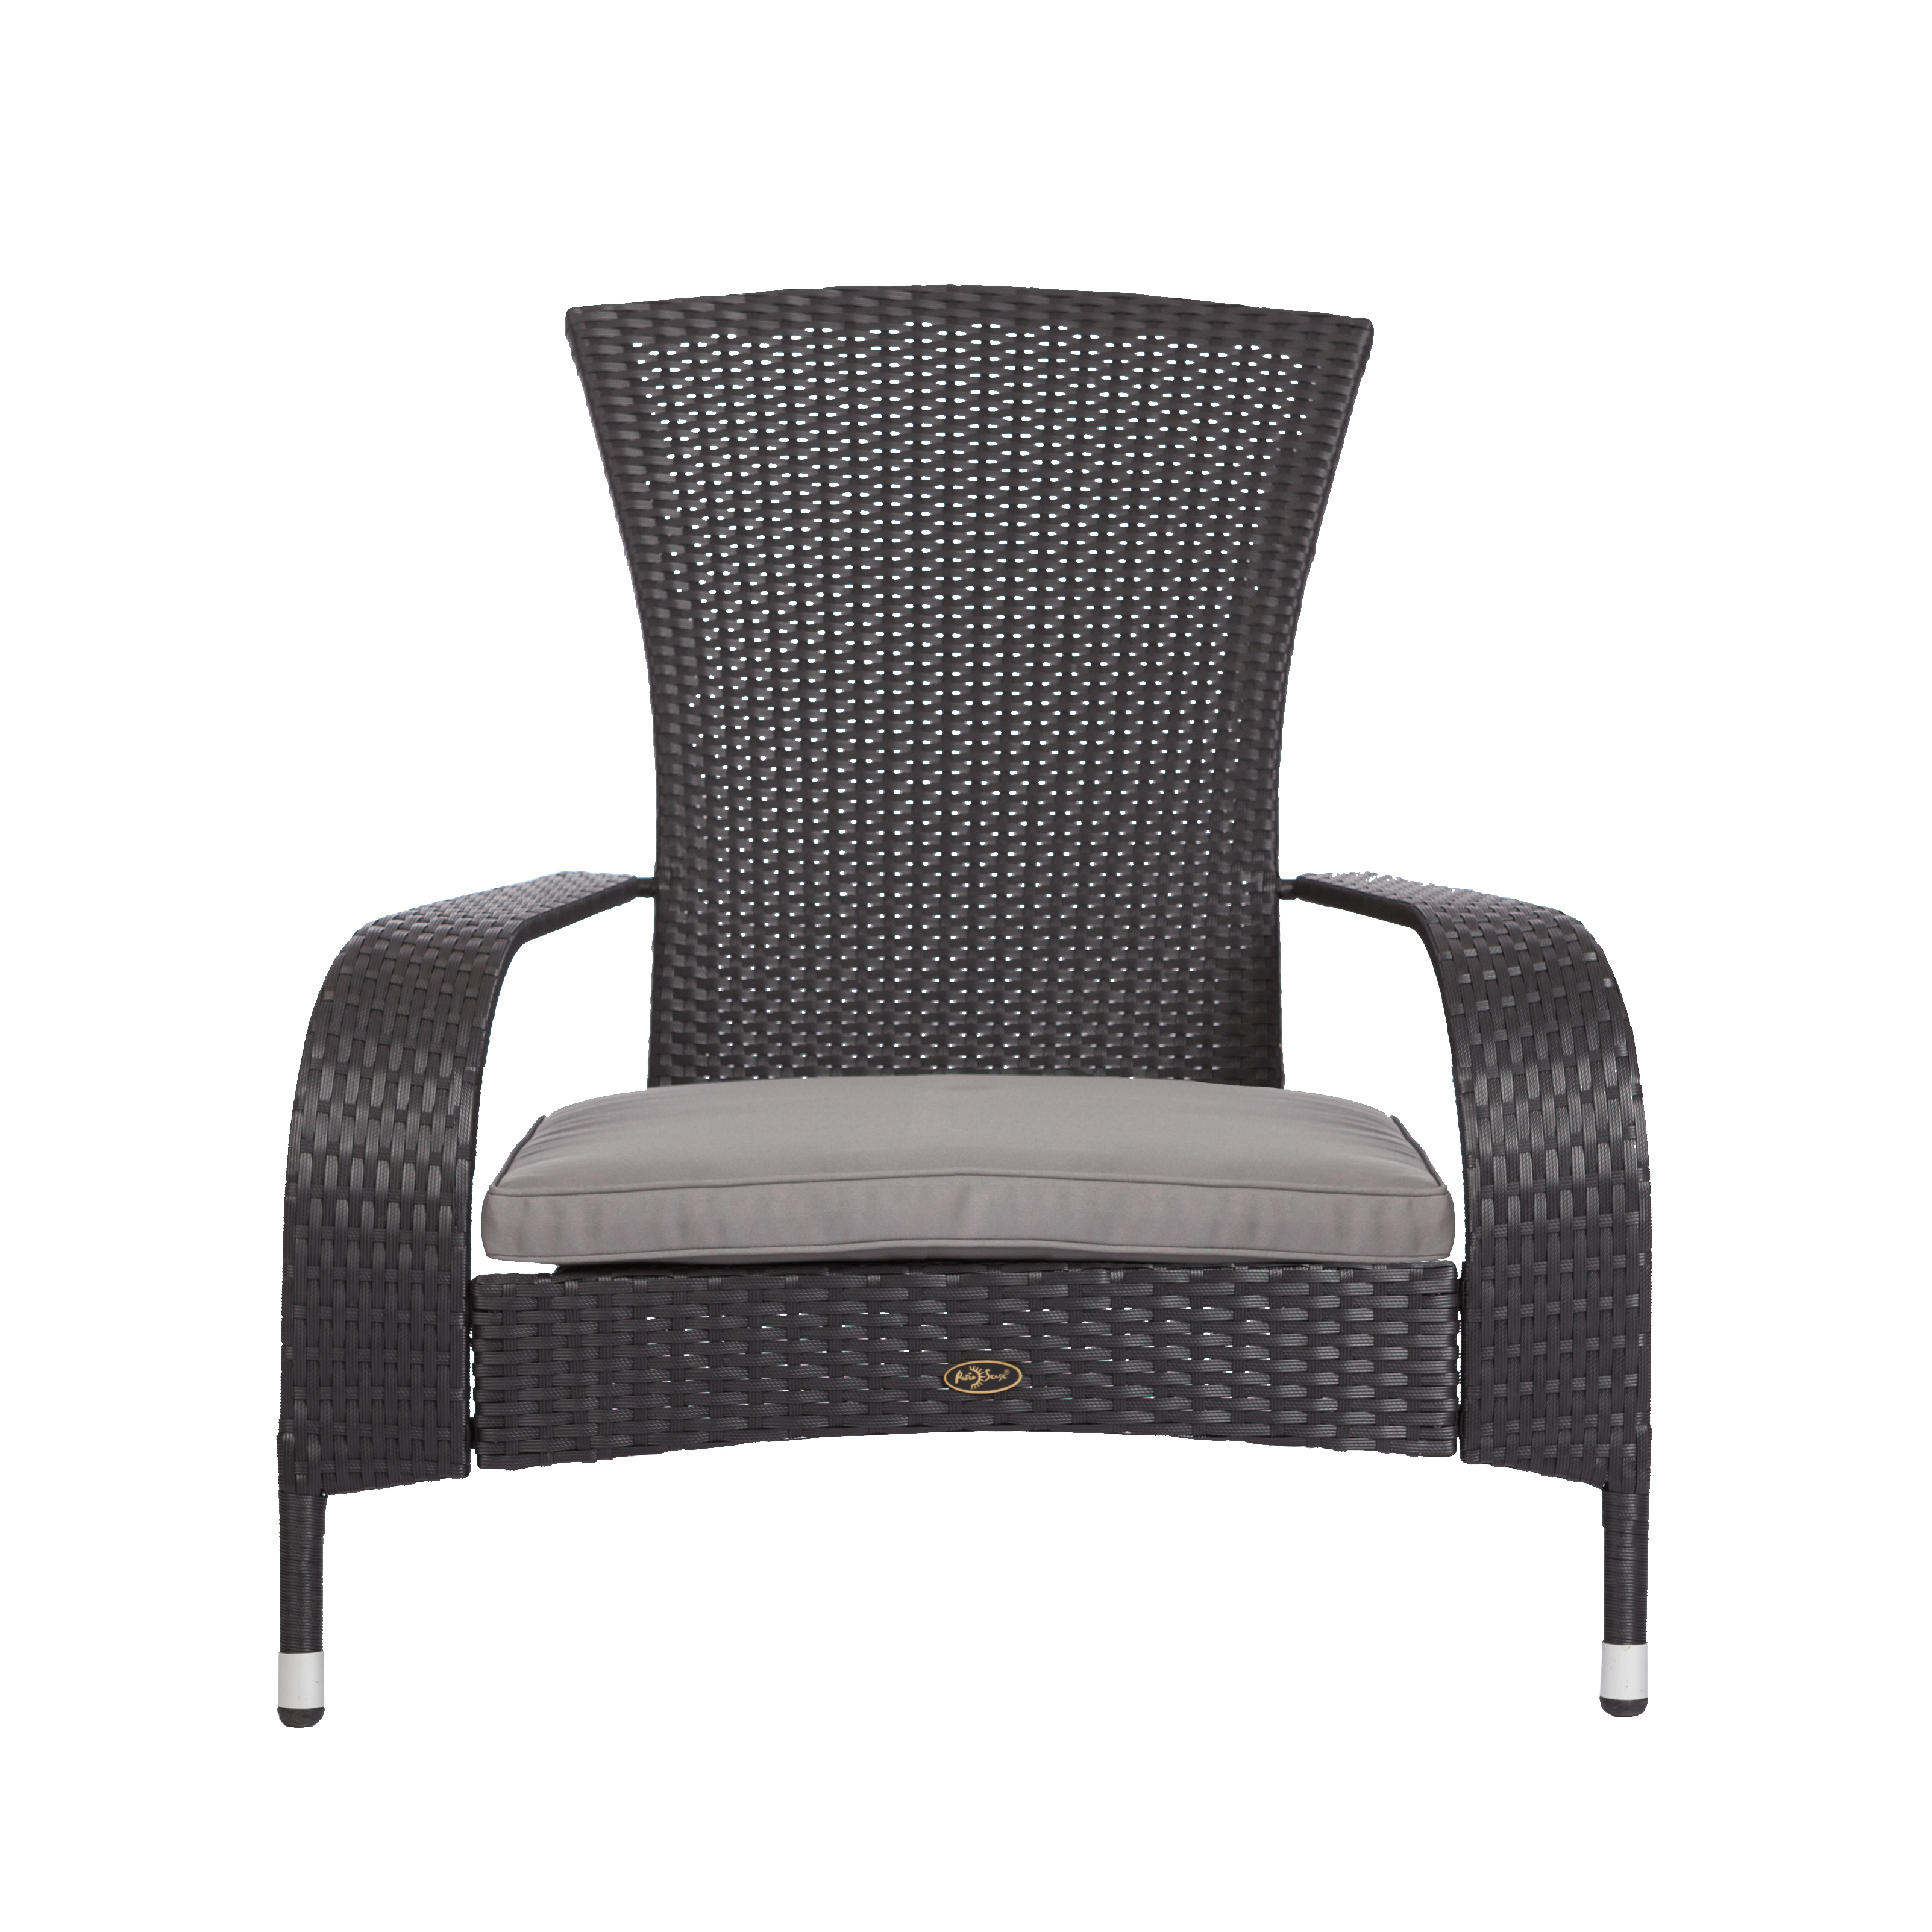 Black Coconino Wicker Chair Well Traveled Living